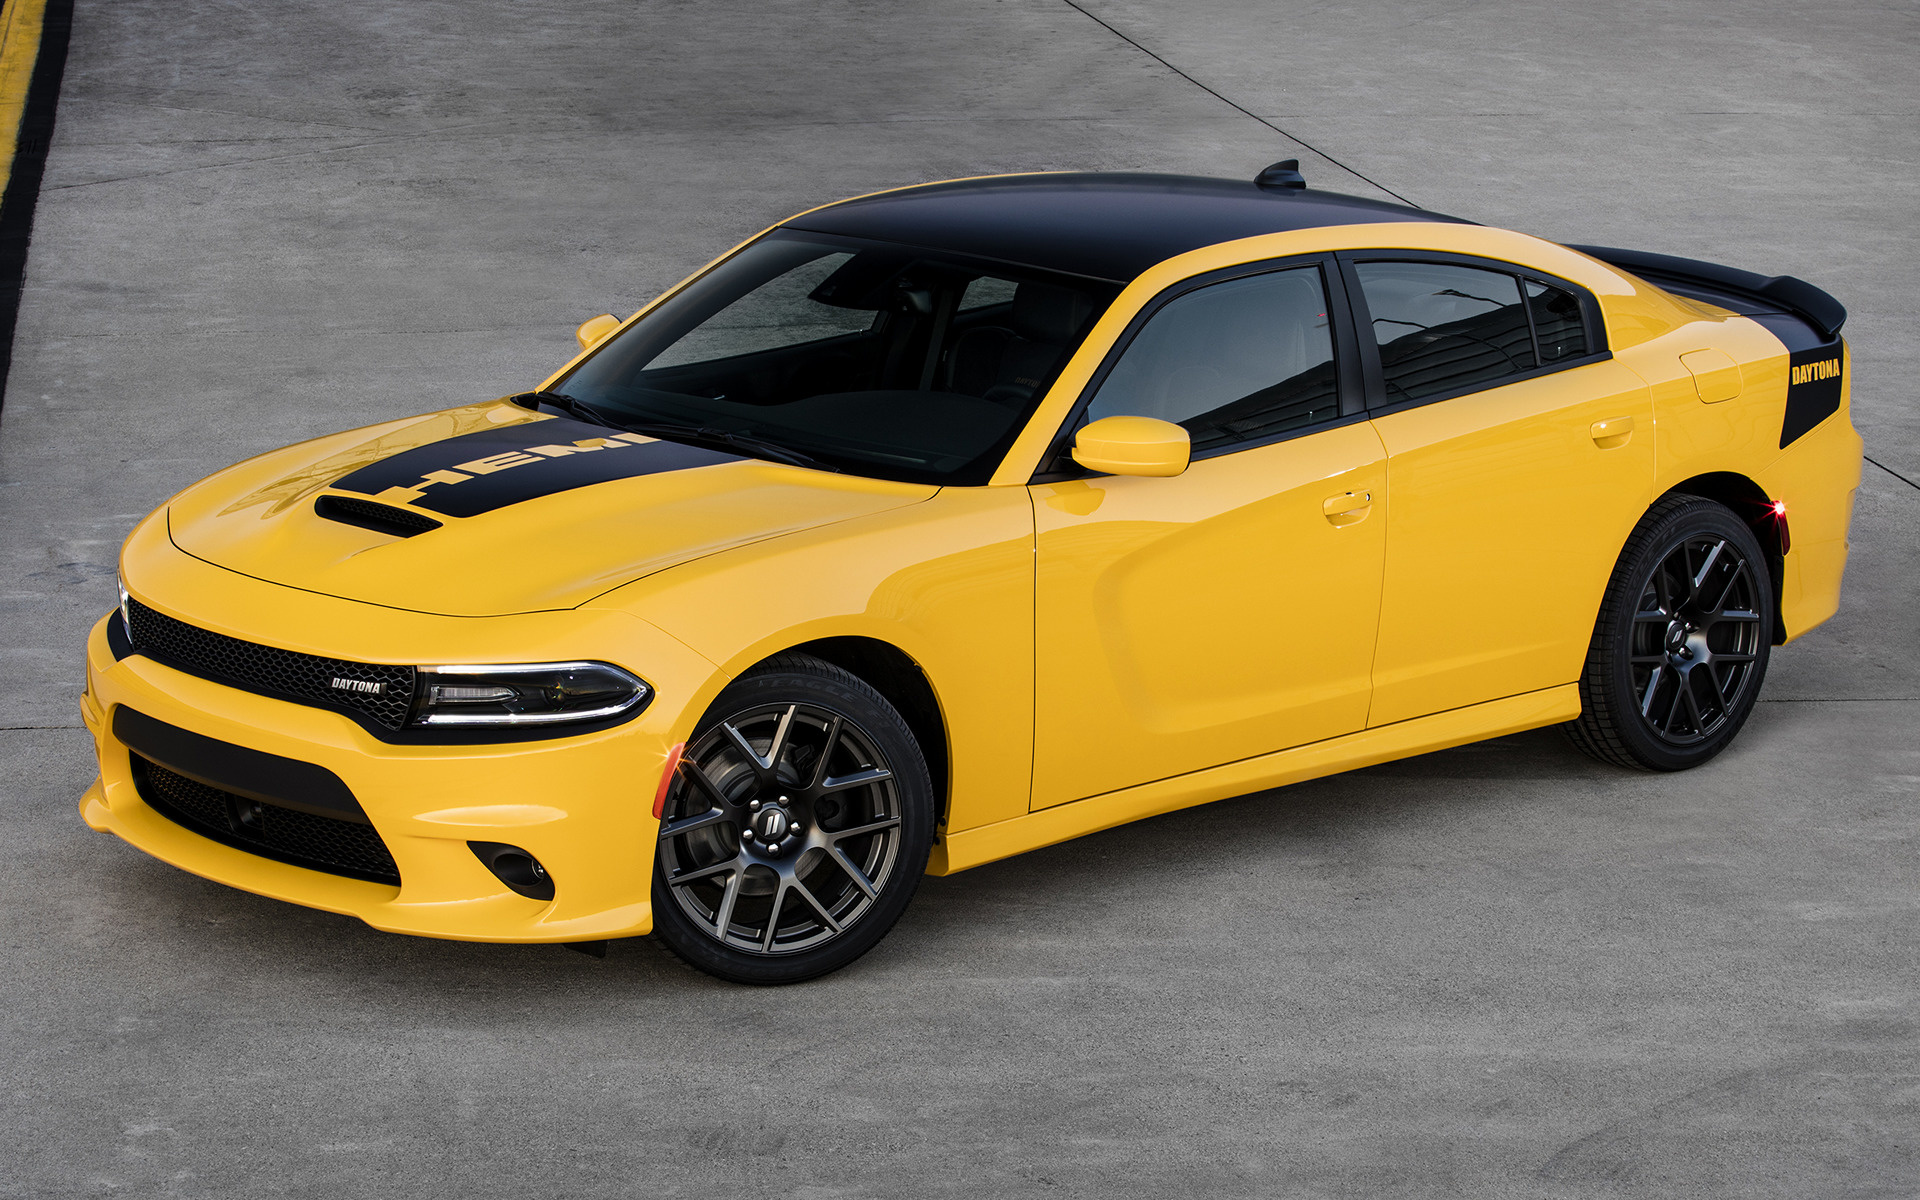 Dodge Charger Daytona (2017) Wallpapers and HD Images ...